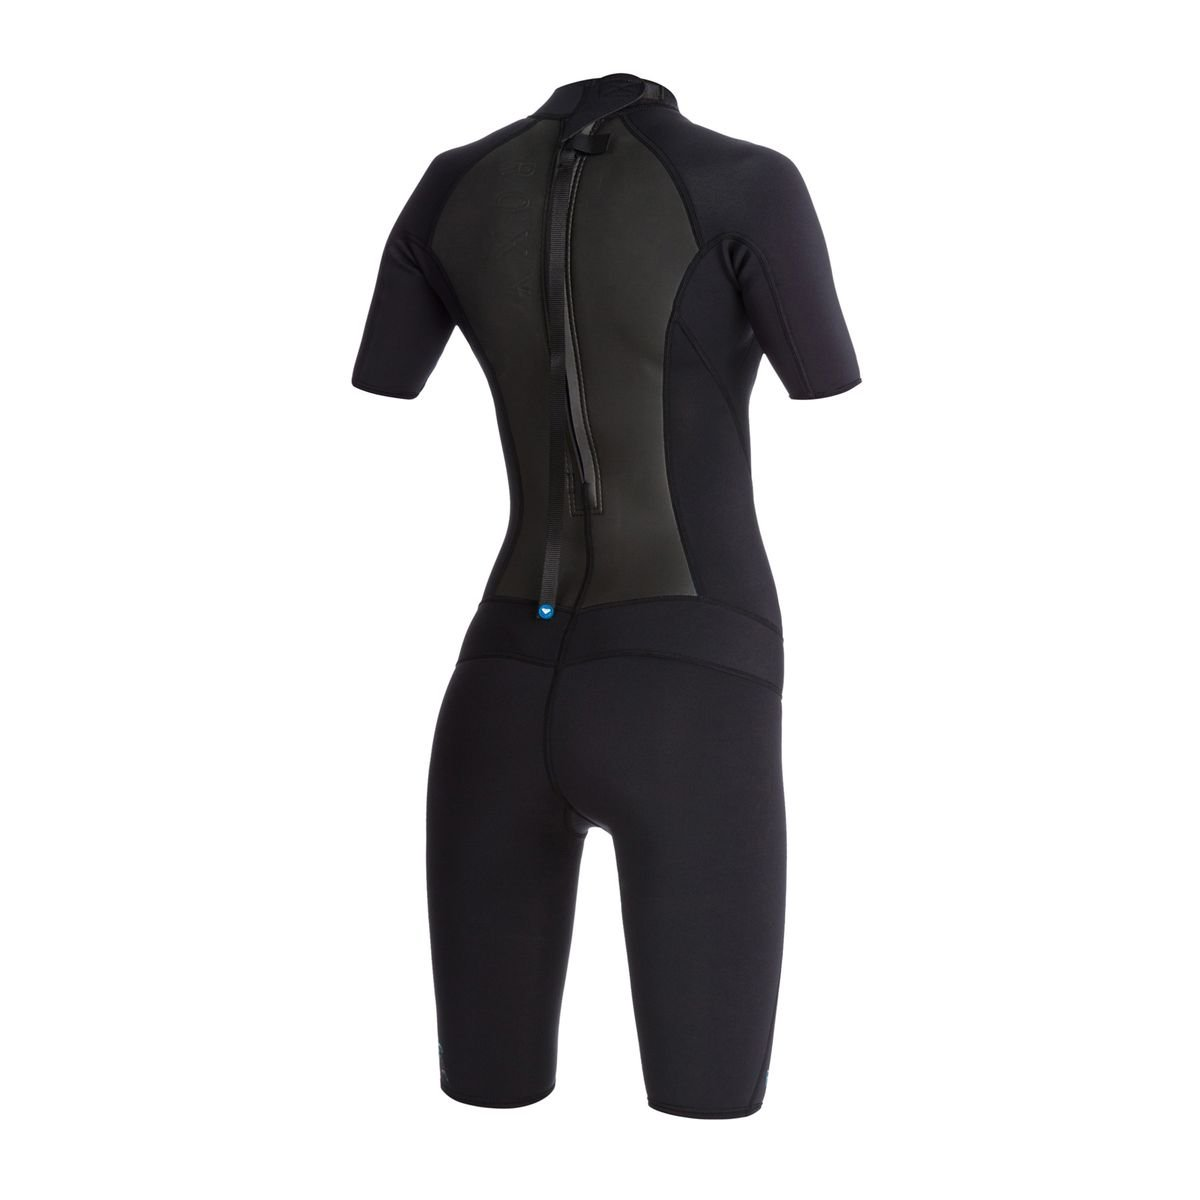 Wetsuit short Women Roxy Syncro 2 2mm SS Back Zip Spring Wetstuit   Amazon.co.uk  Clothing 330a3e4e8